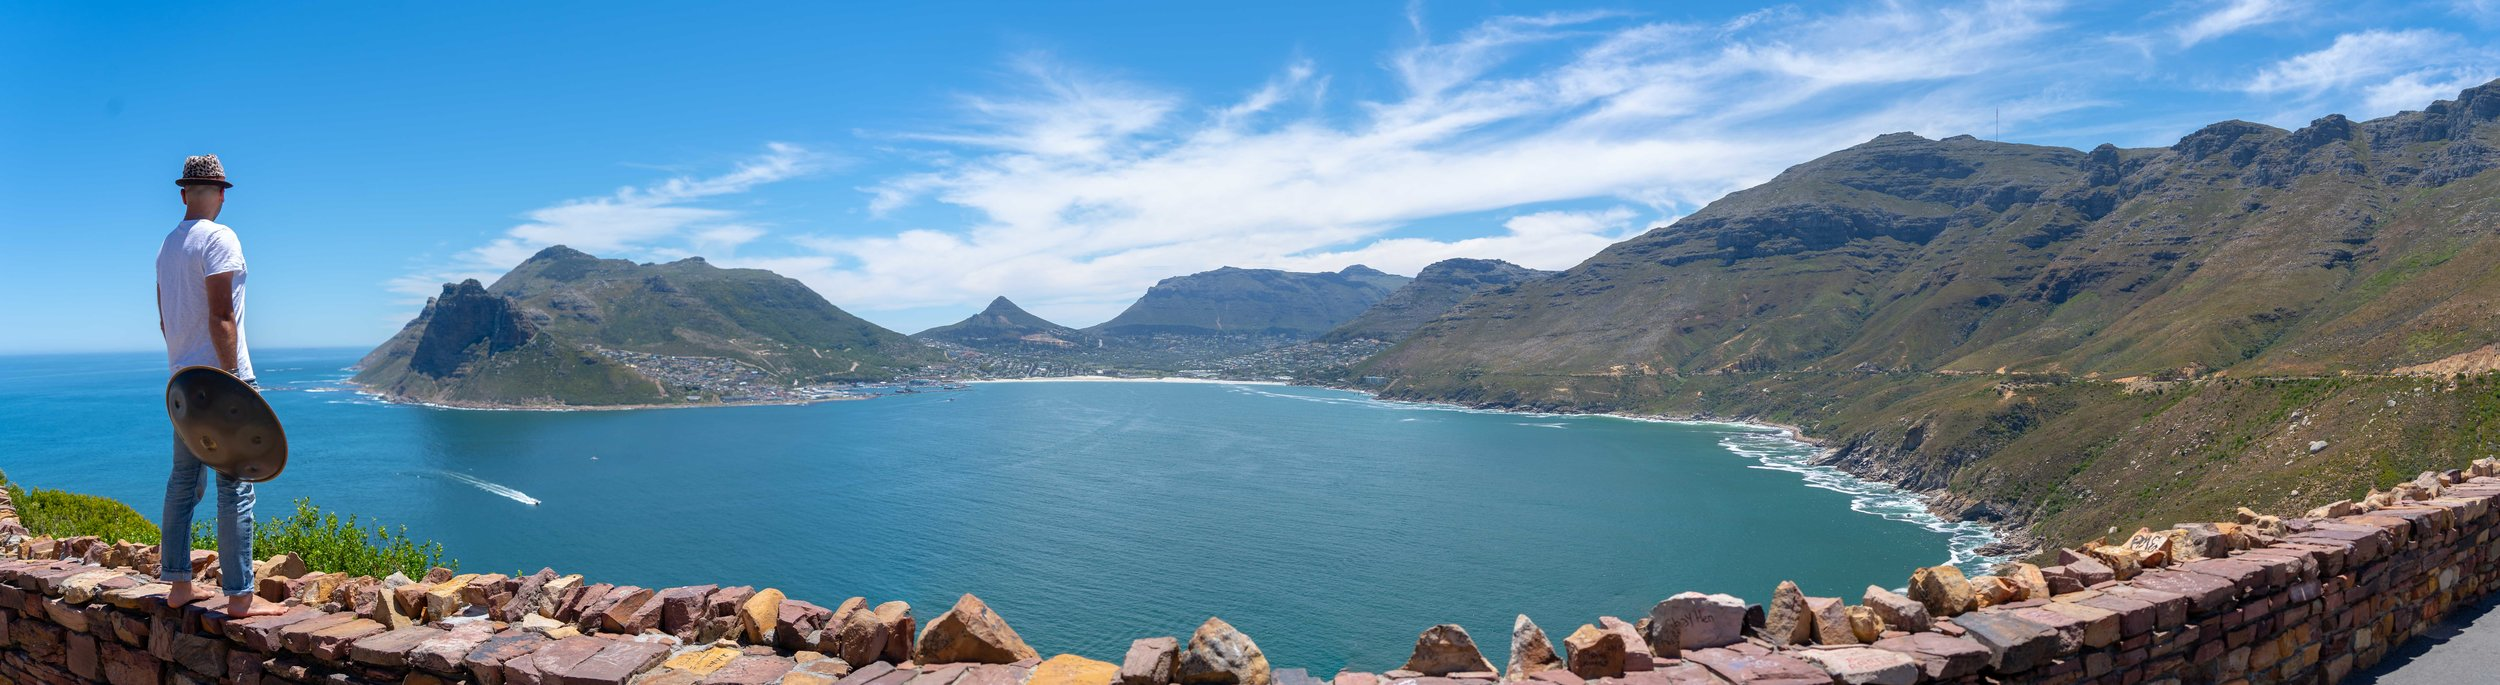 View of Hout Bay Harbour from Chapman's Peak Drive